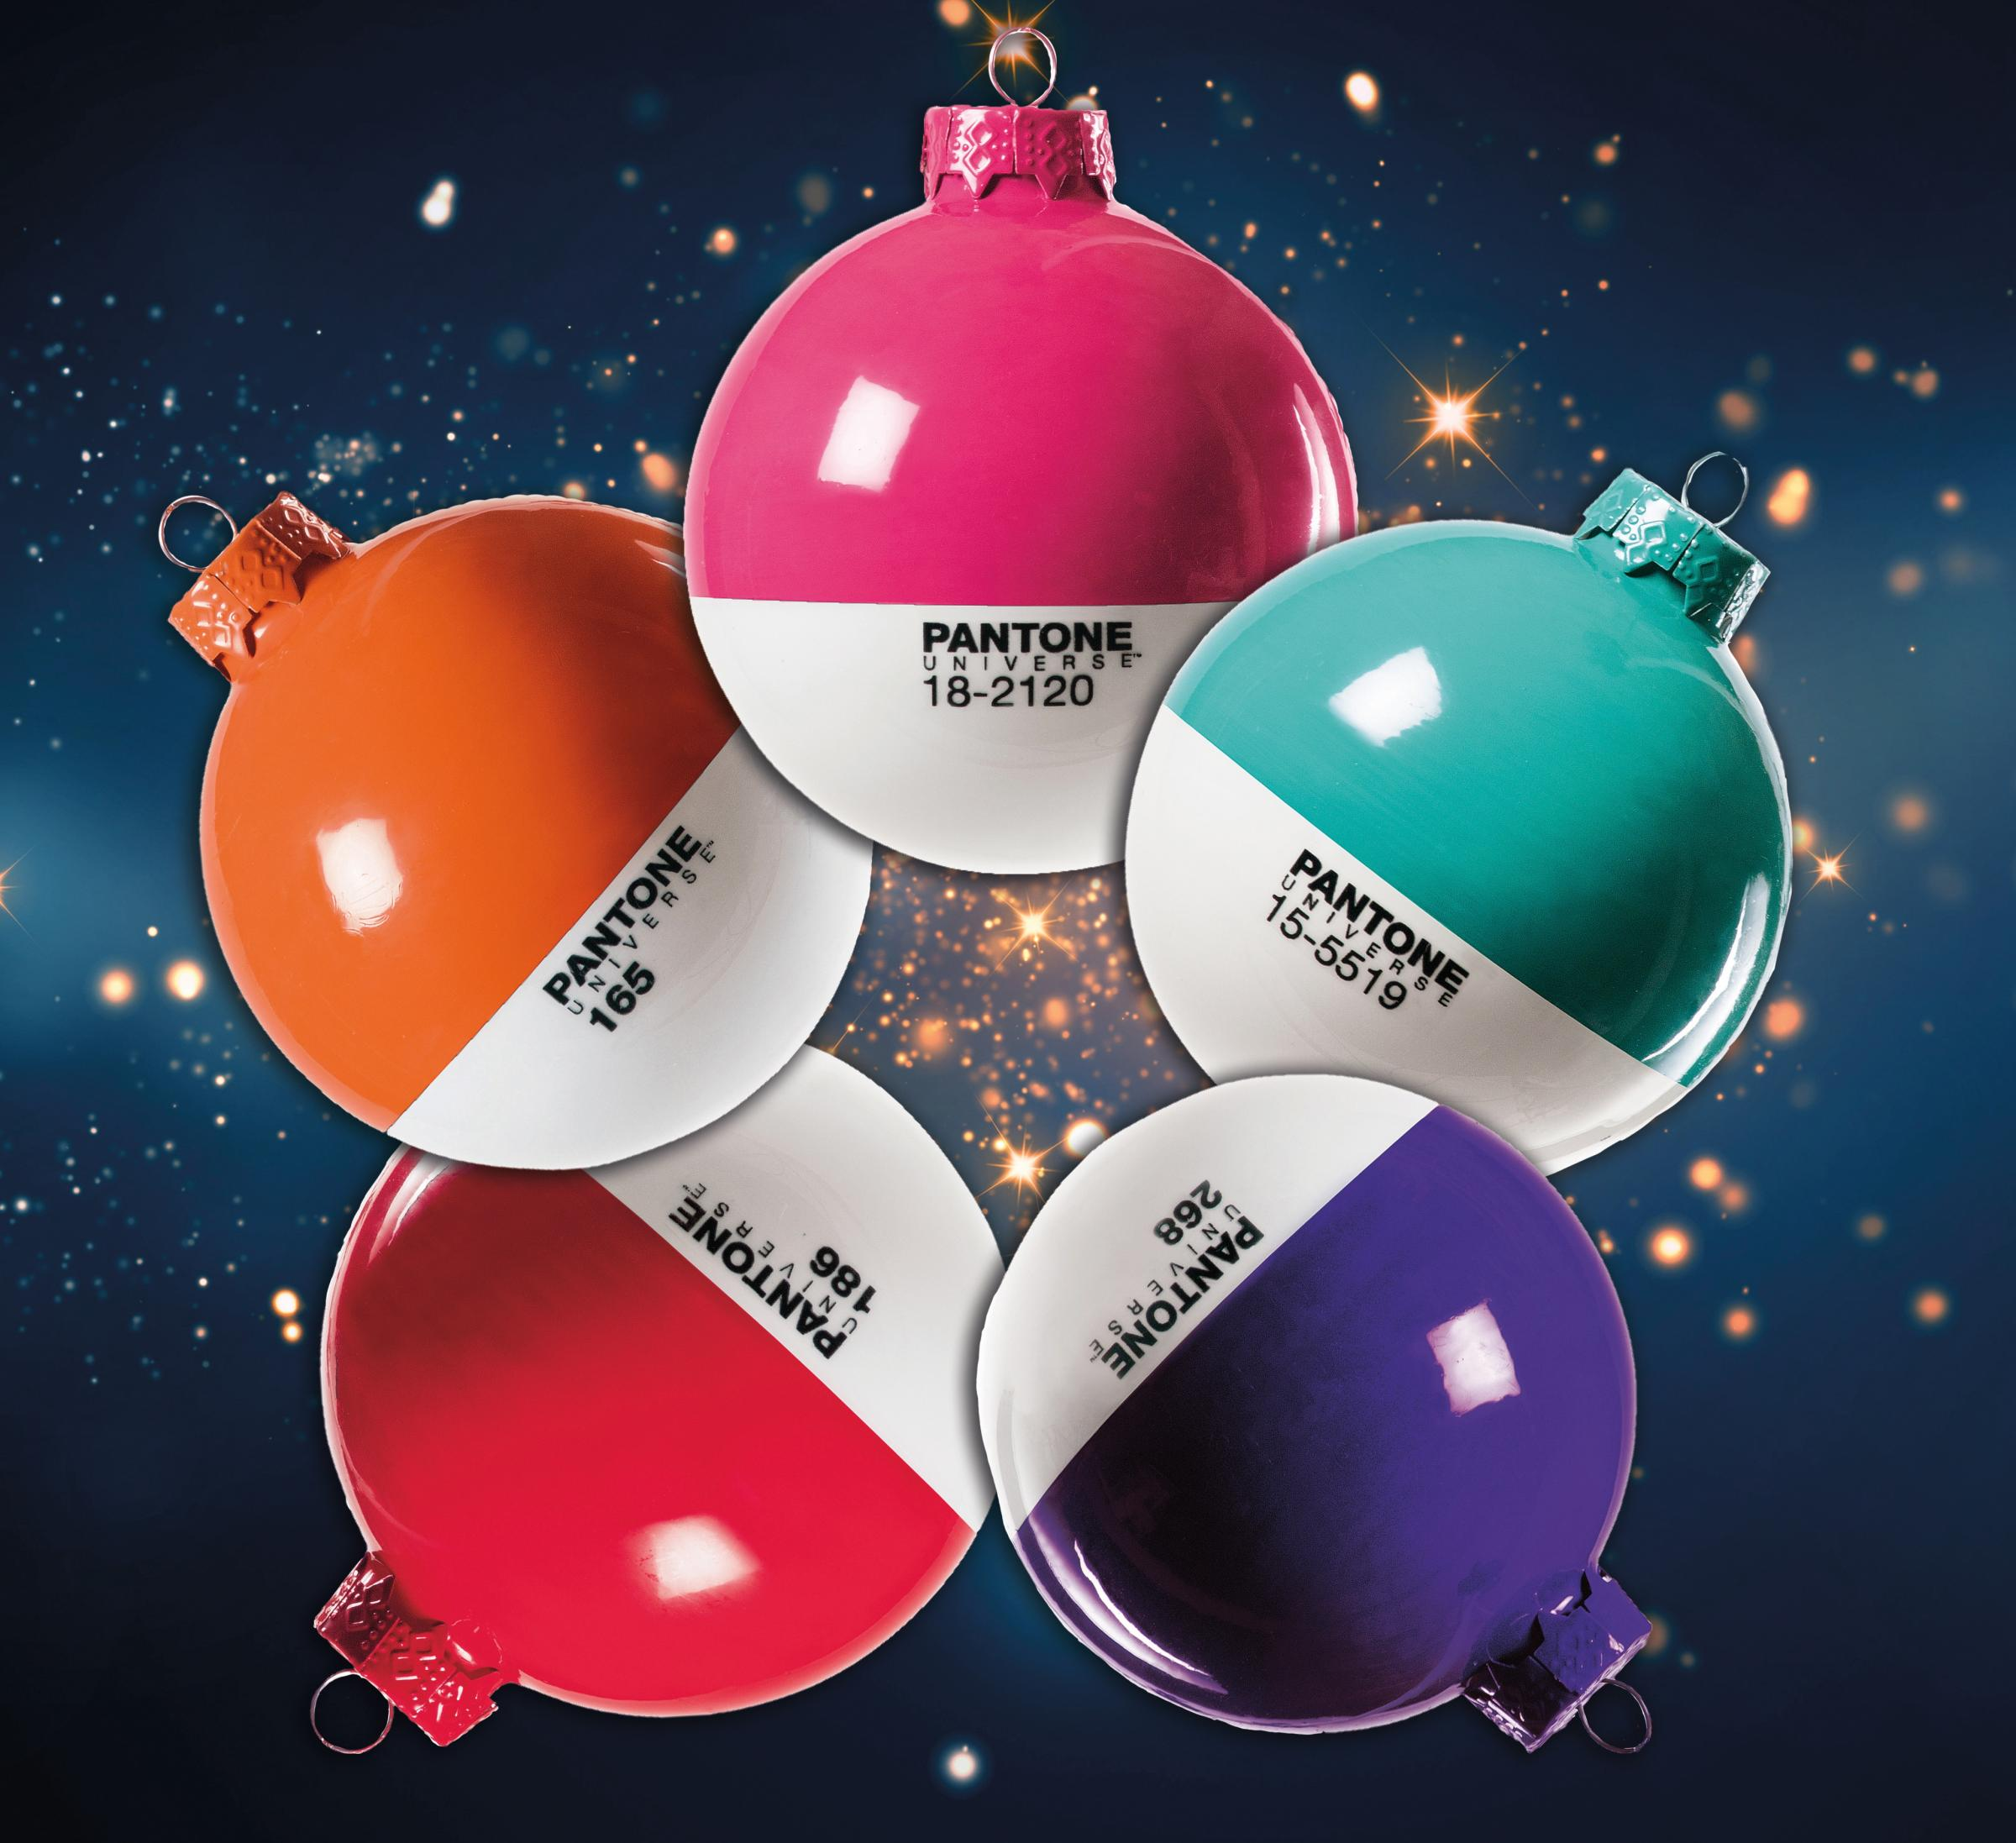 Pantone Christmas Ornaments Festive Fun With Pantone Universe Christmas Baubles Somerset